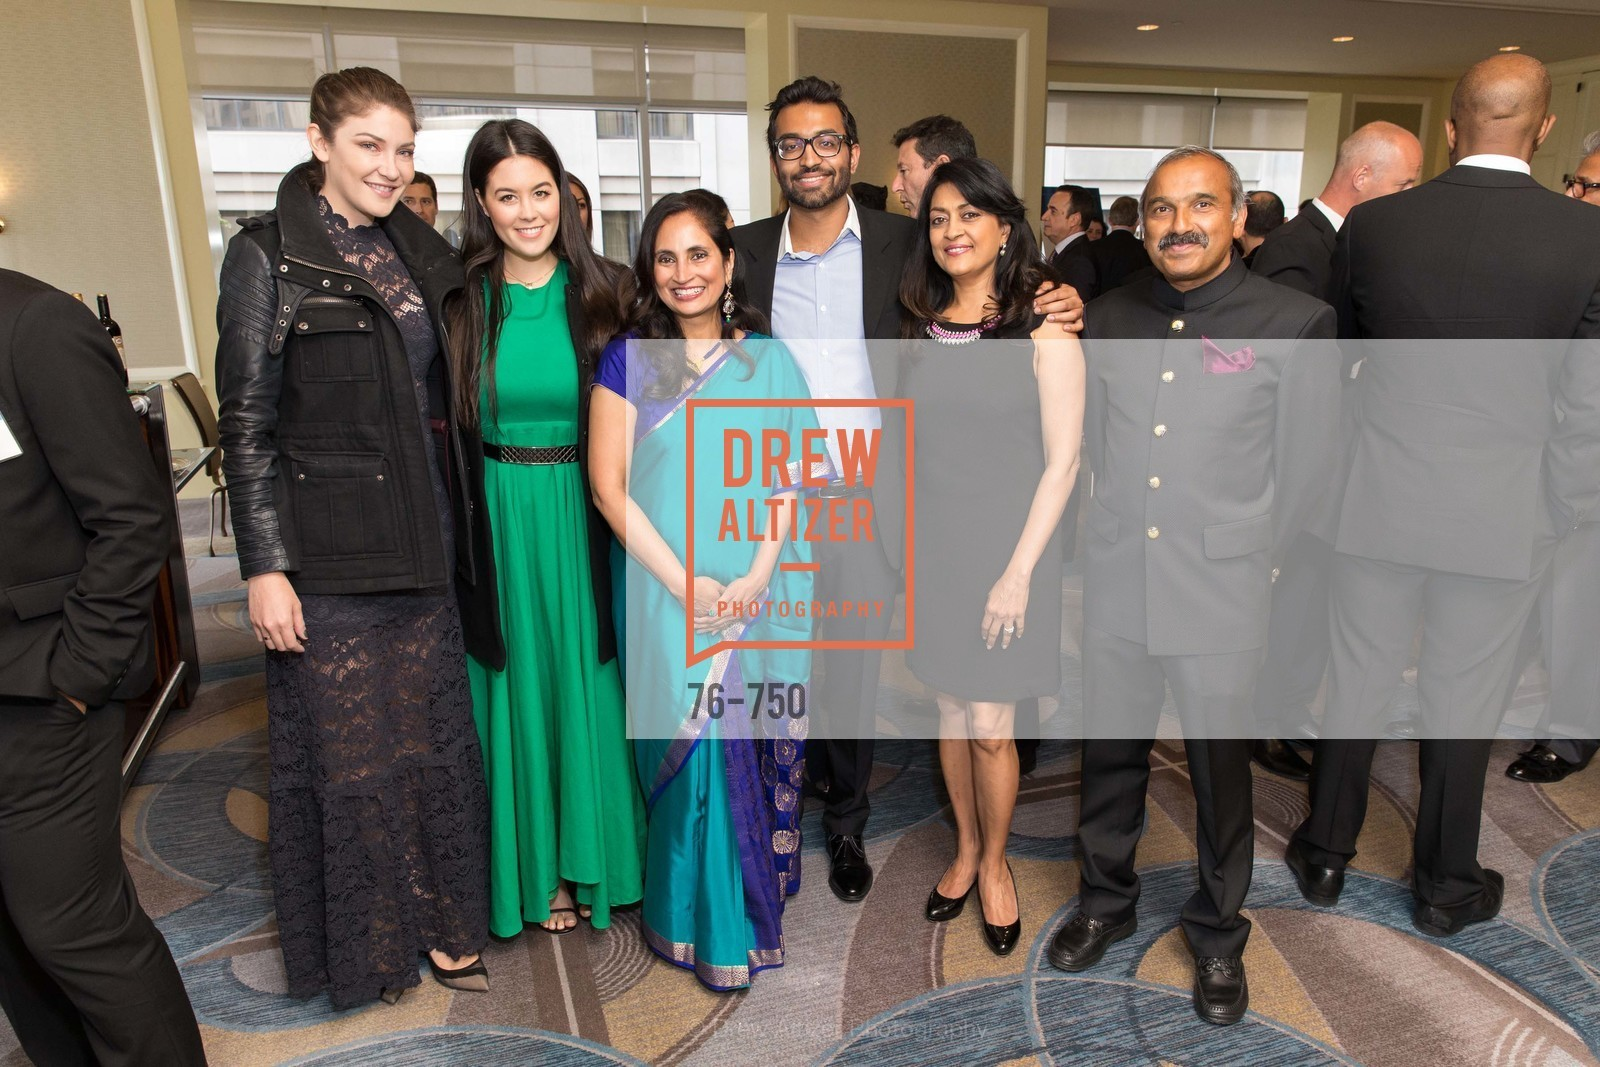 Lata Krishnan, Padmasree Warrior, Rohan Shah, Mohan Warrier, WORLD AFFAIRS COUNCIL Awards Dinner, US, May 27th, 2015,Drew Altizer, Drew Altizer Photography, full-service agency, private events, San Francisco photographer, photographer california